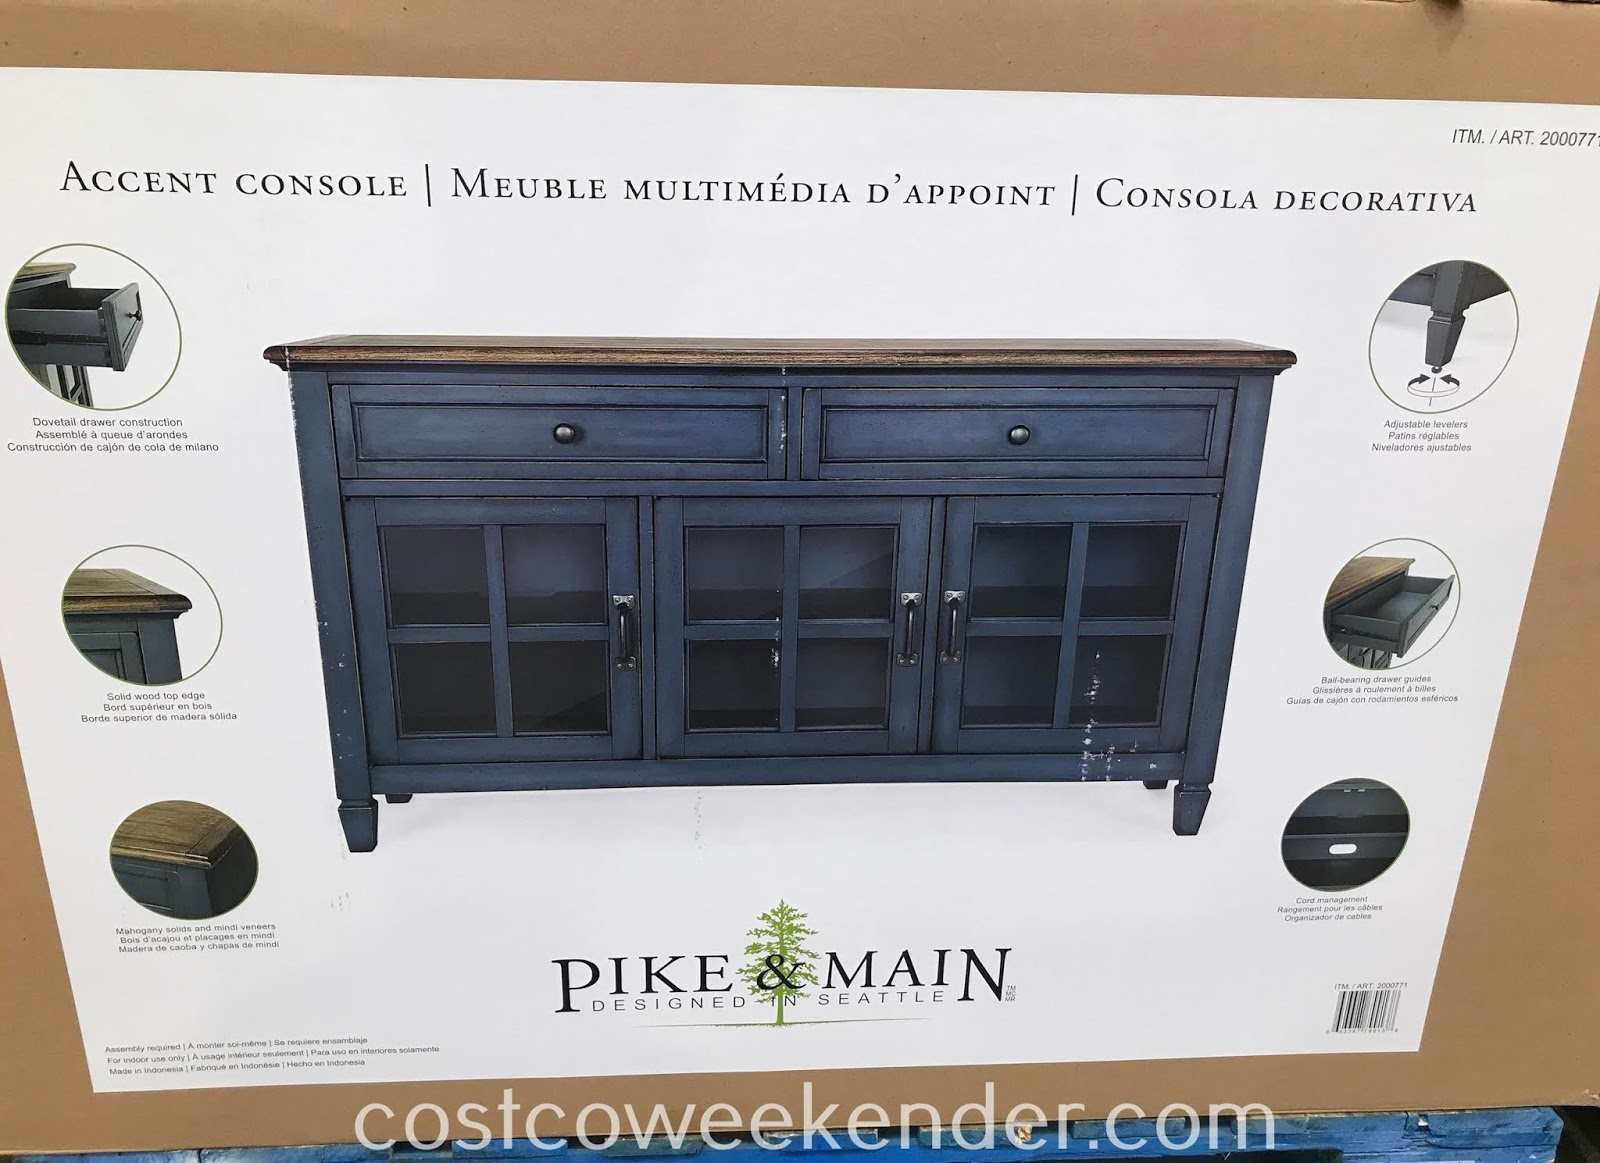 Costco 2000771 - Pike and Main Annie Accent Console: great for any home